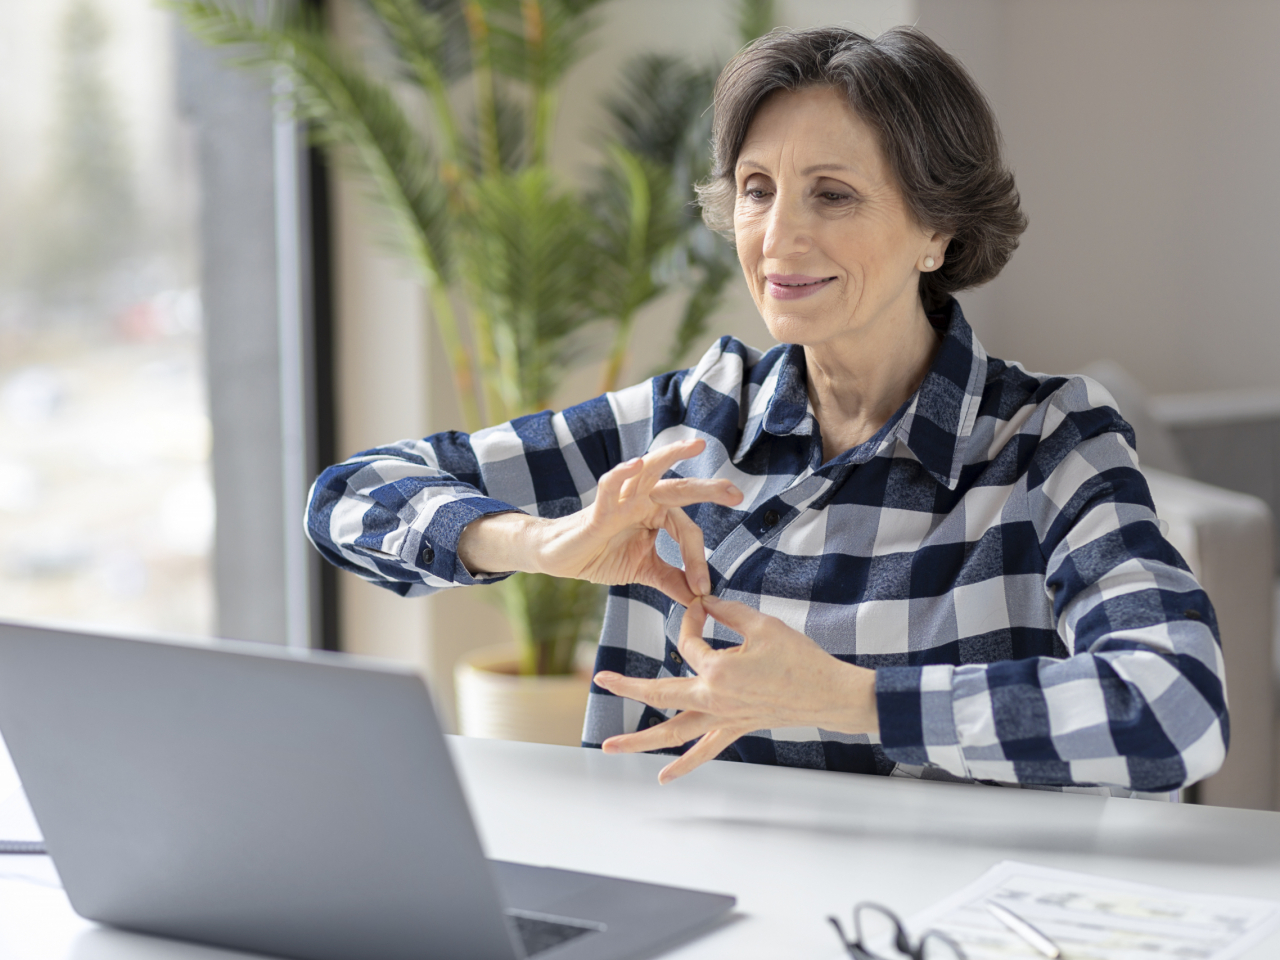 Deaf elderly woman uses sign language while video call using laptop while sitting in home office